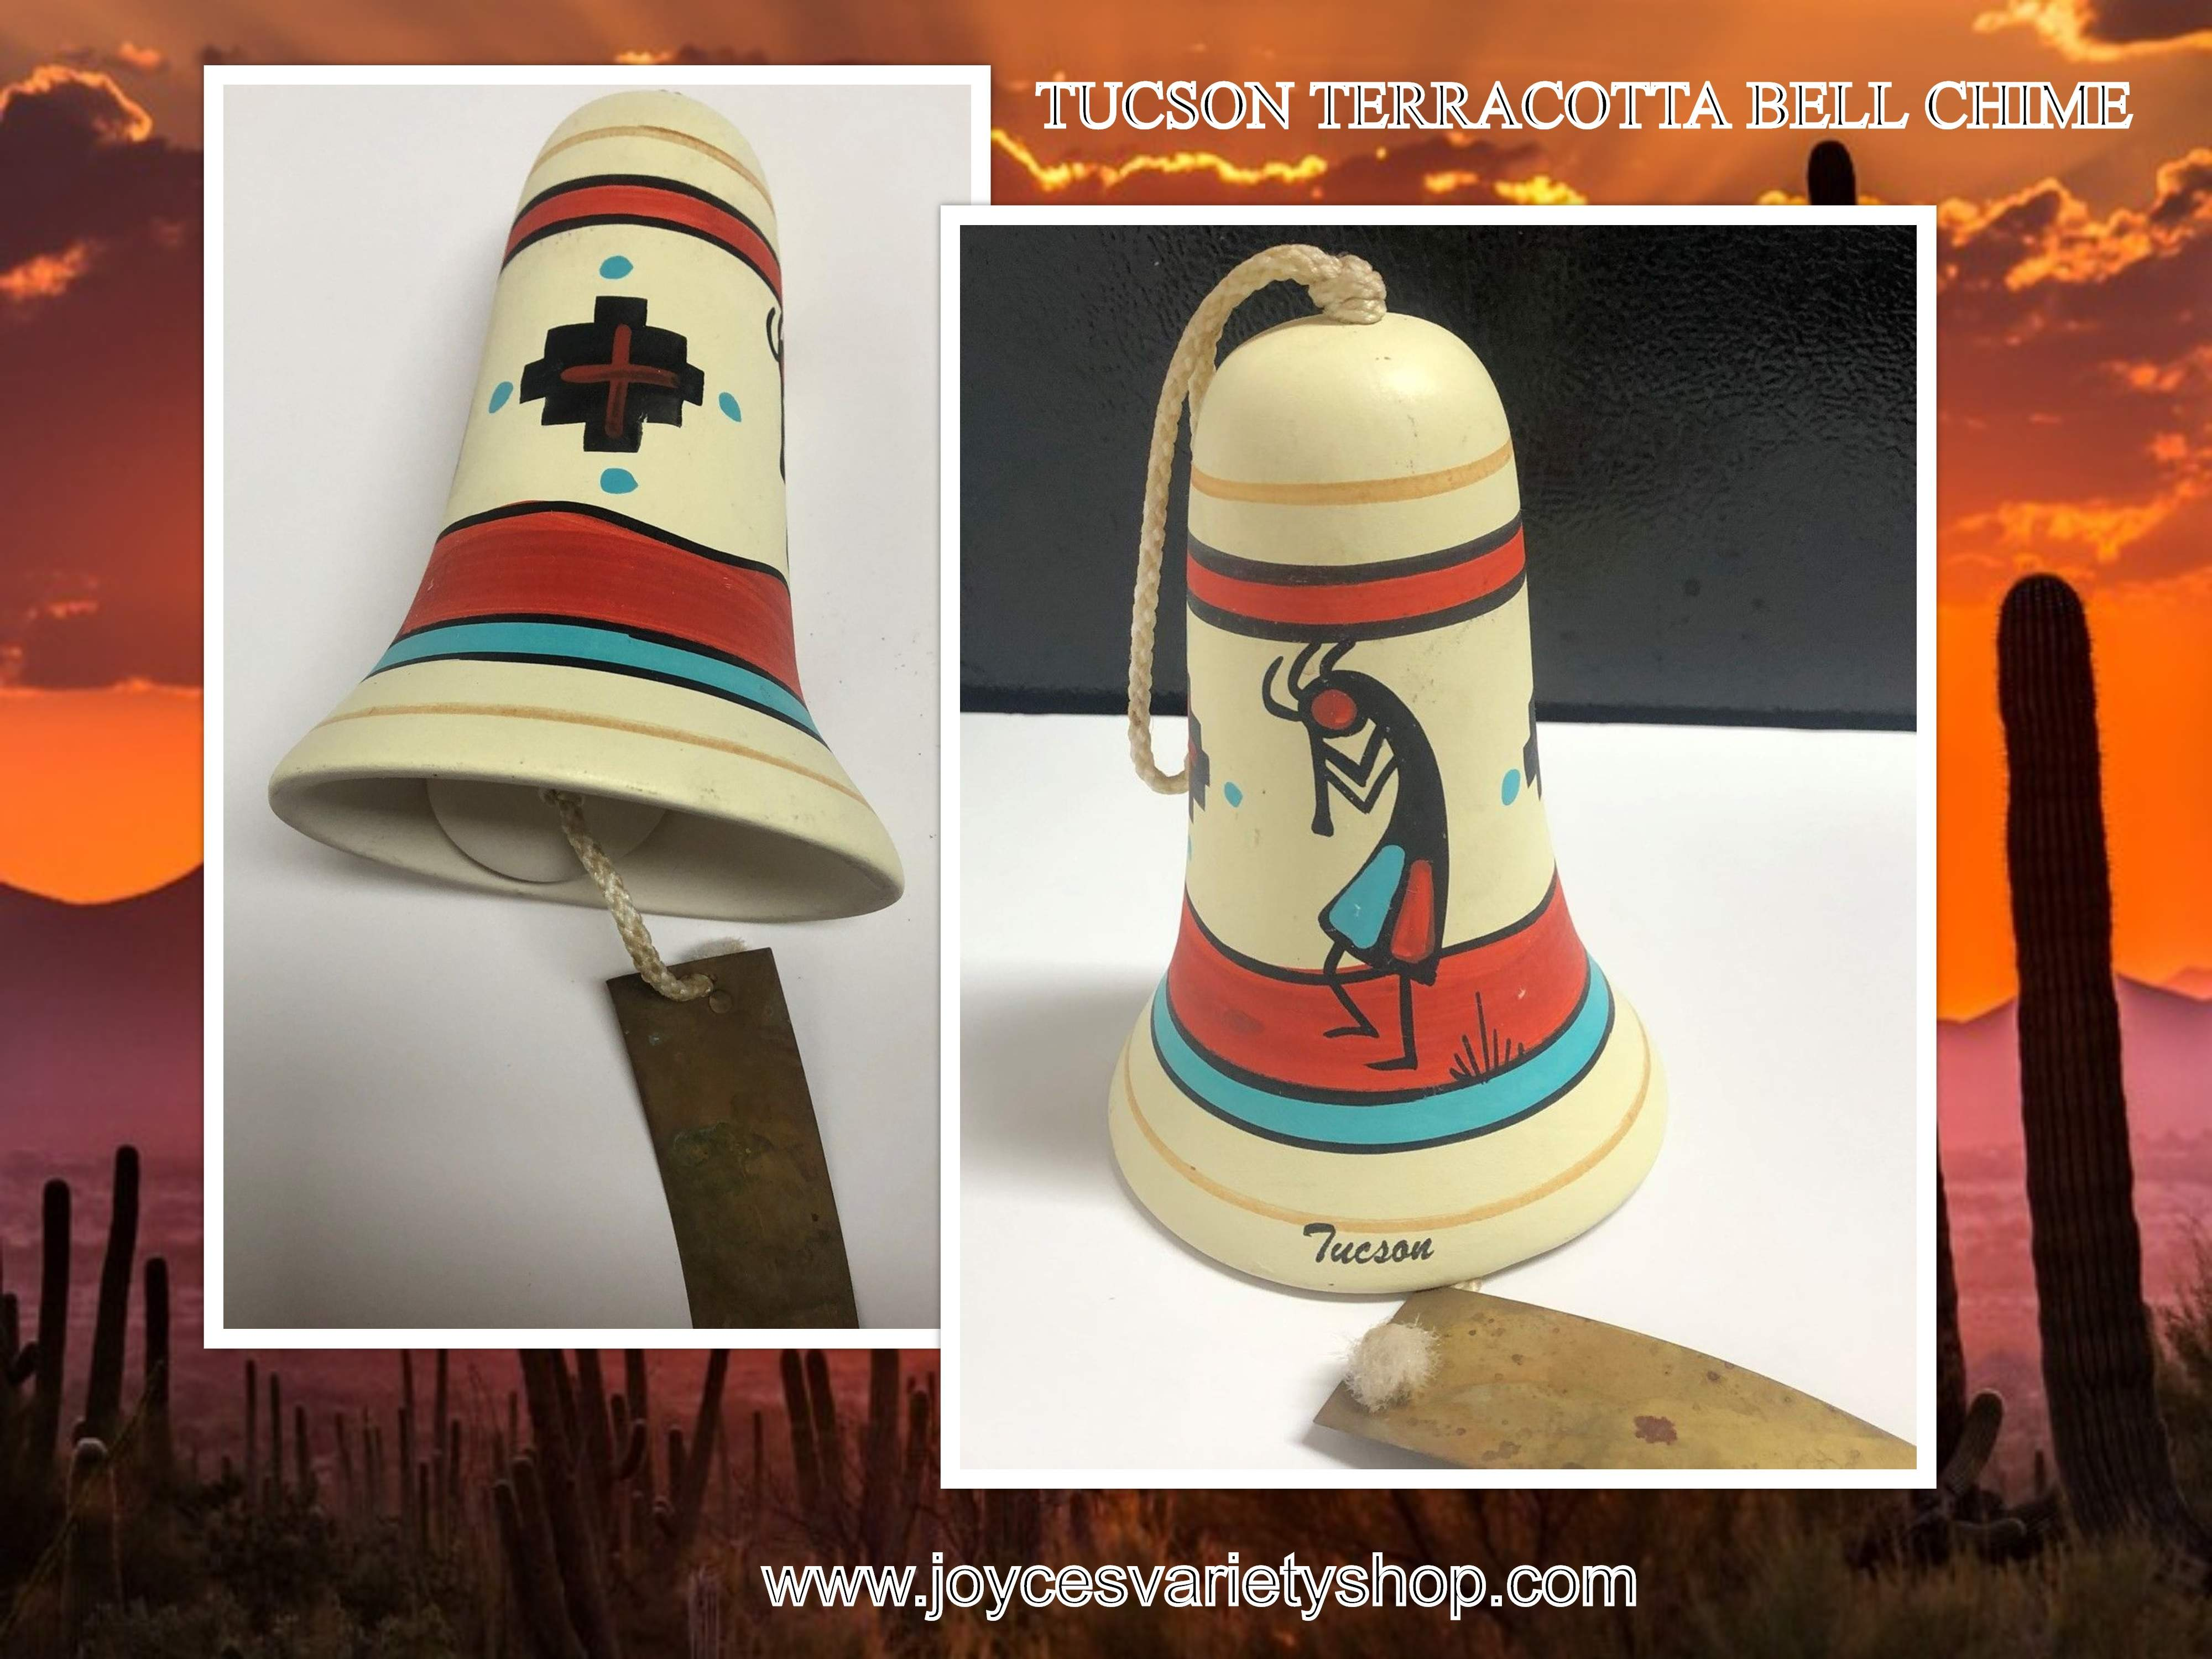 Tucson Arizona Hand Painted Terracotta Bell Chime 7""